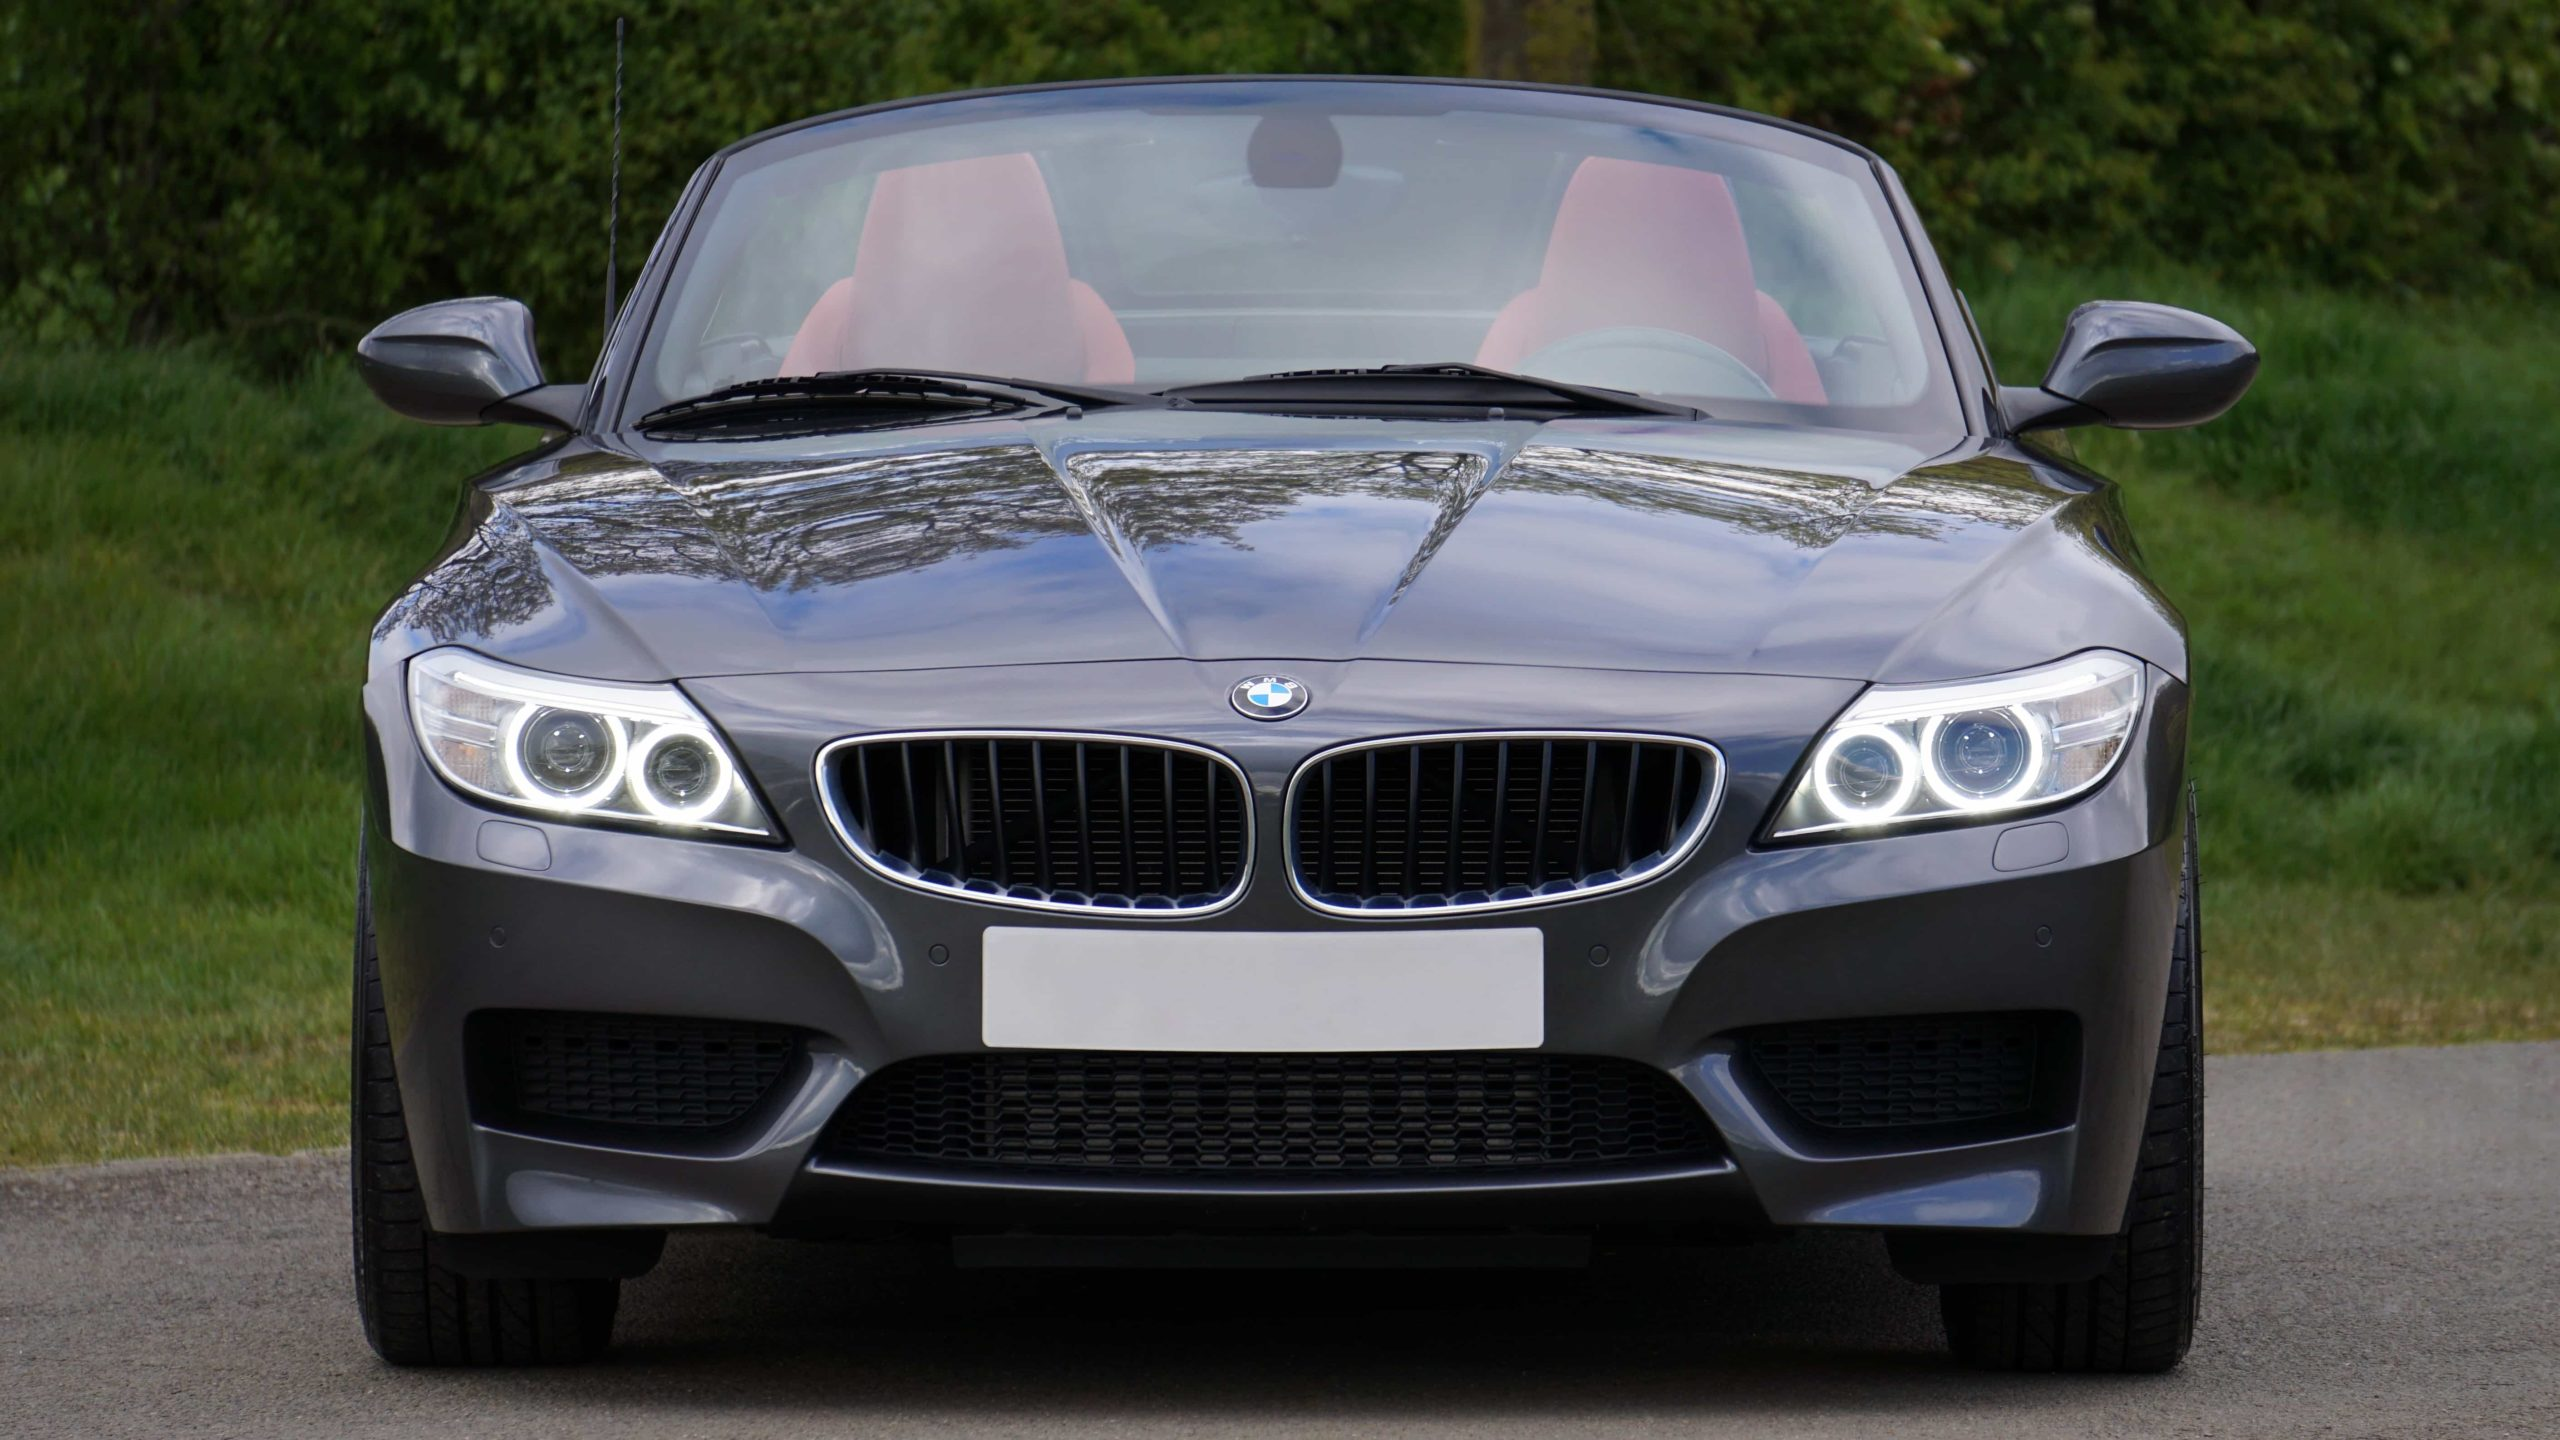 How much does it cost to replace a BMW windshield?